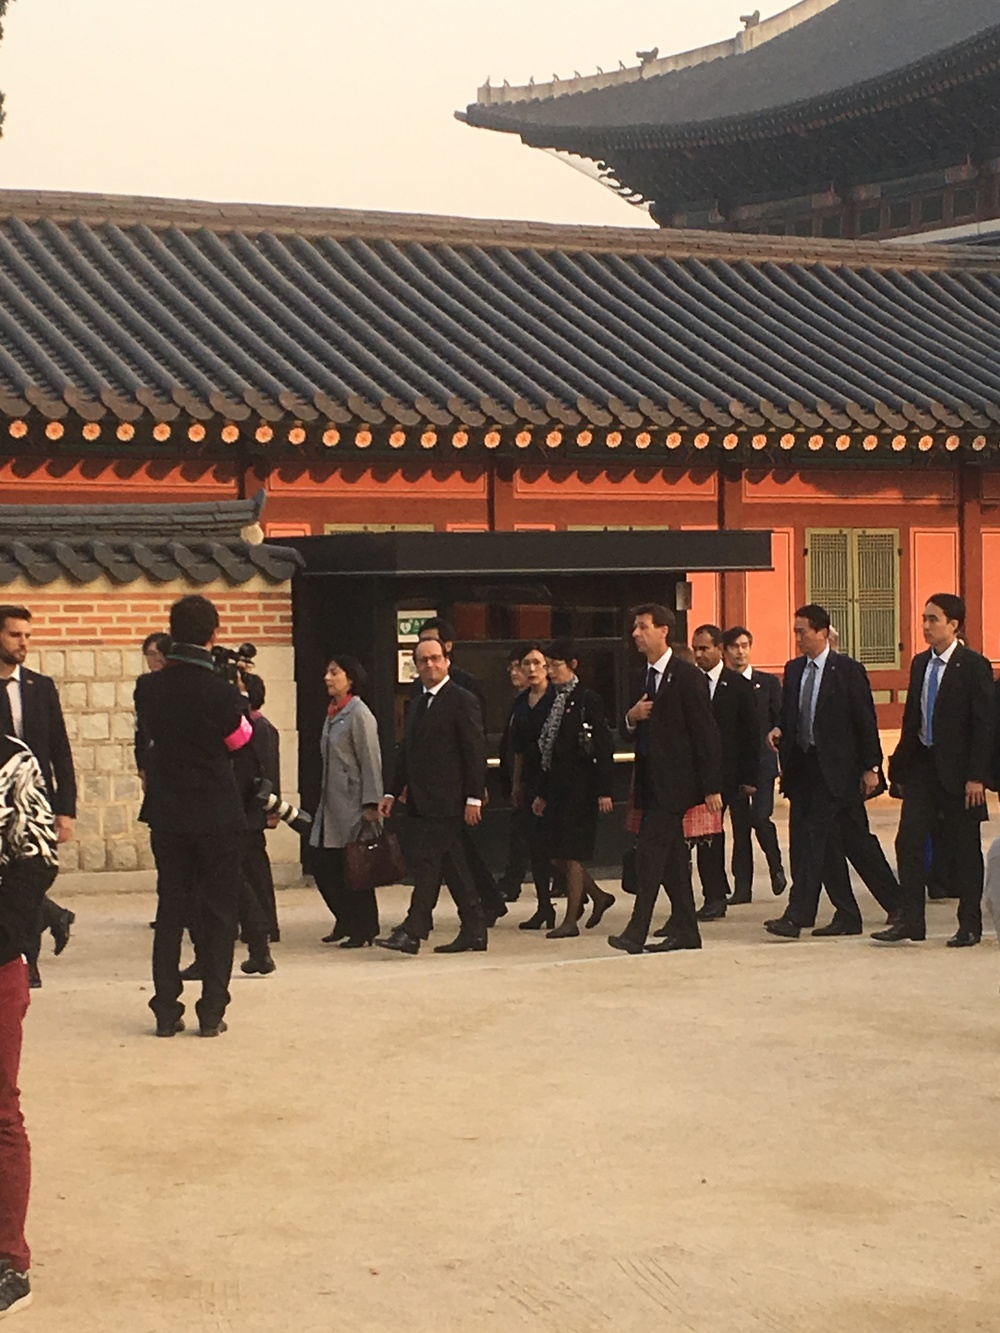 Francois Hollande at Gyeongbokgung palace